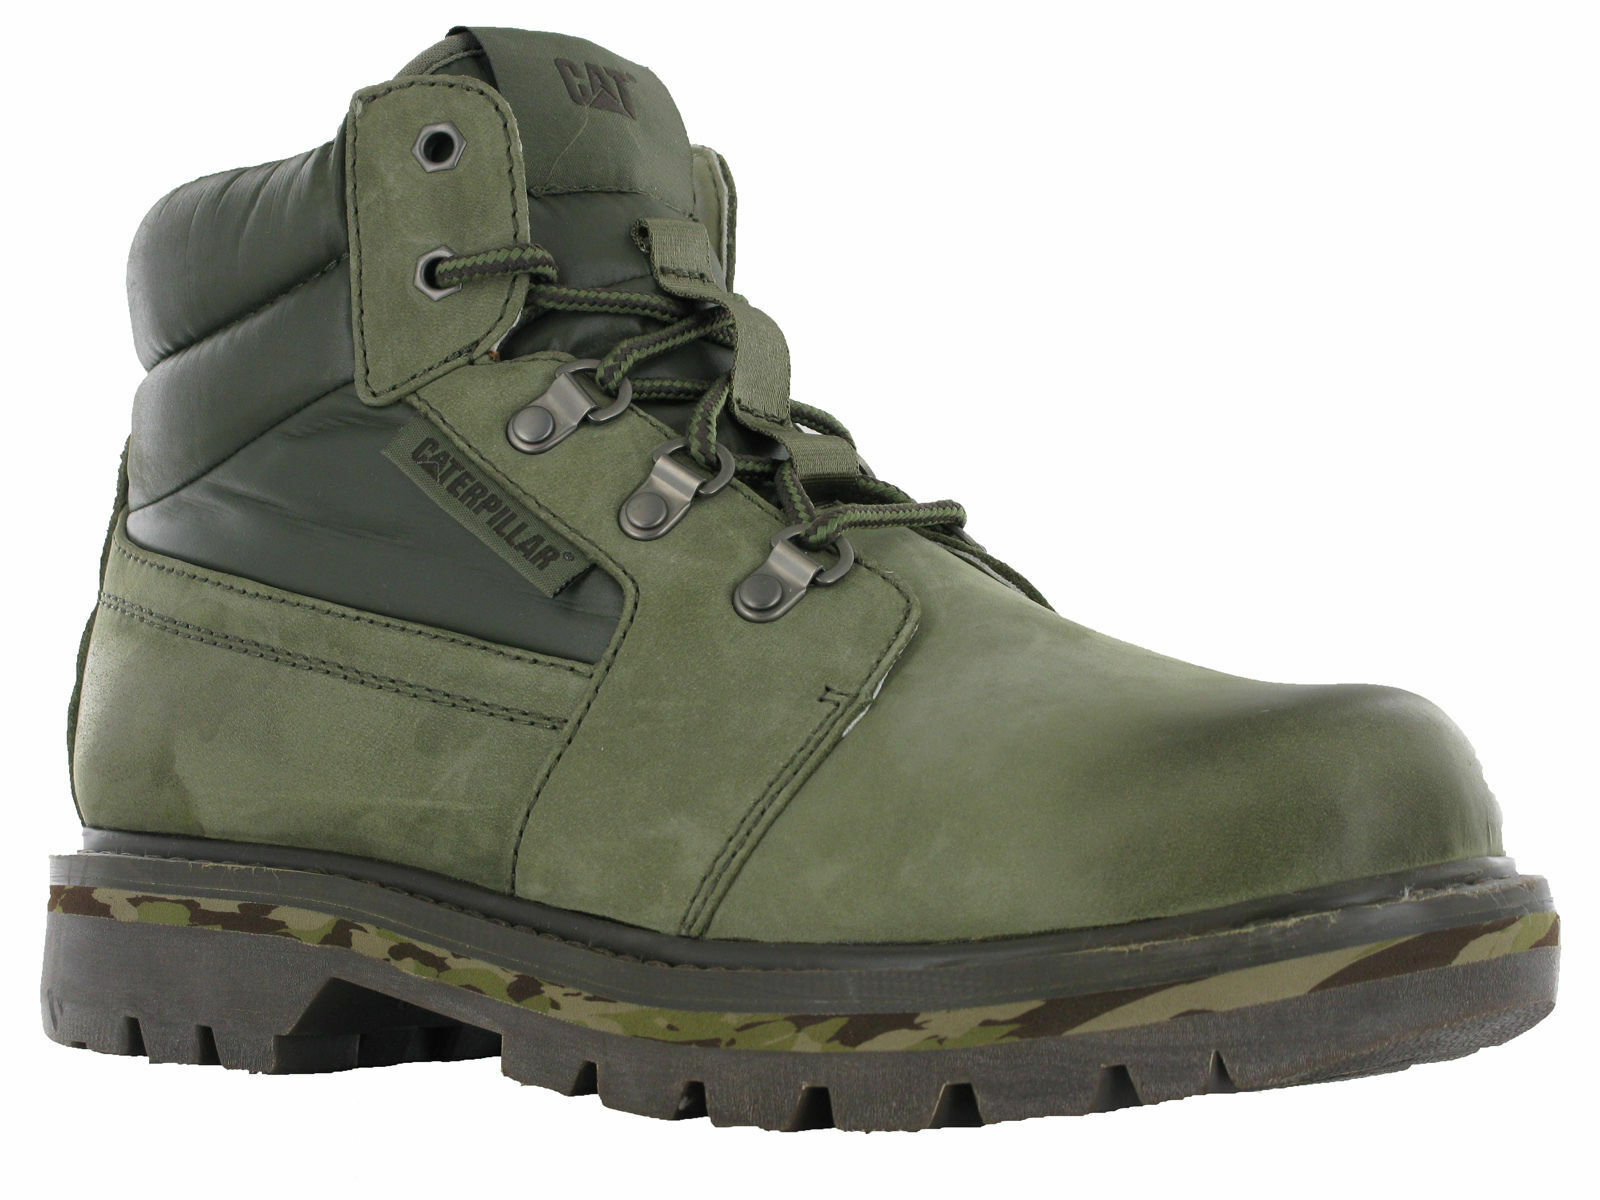 Caterpillar Junction Suede Padded Leather Ankle Padded Suede Burnt Olive Army Winter Boots c28fec